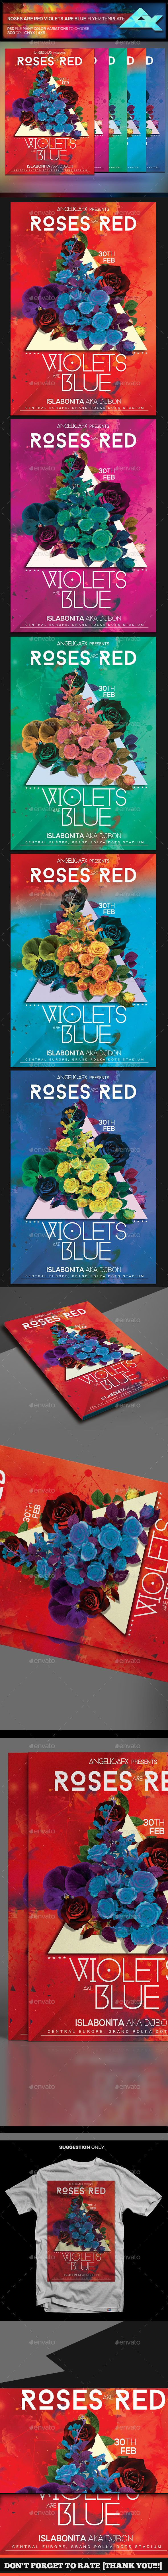 Roses Are Red Violets Are Blue Flyer Template  Colorful Designs